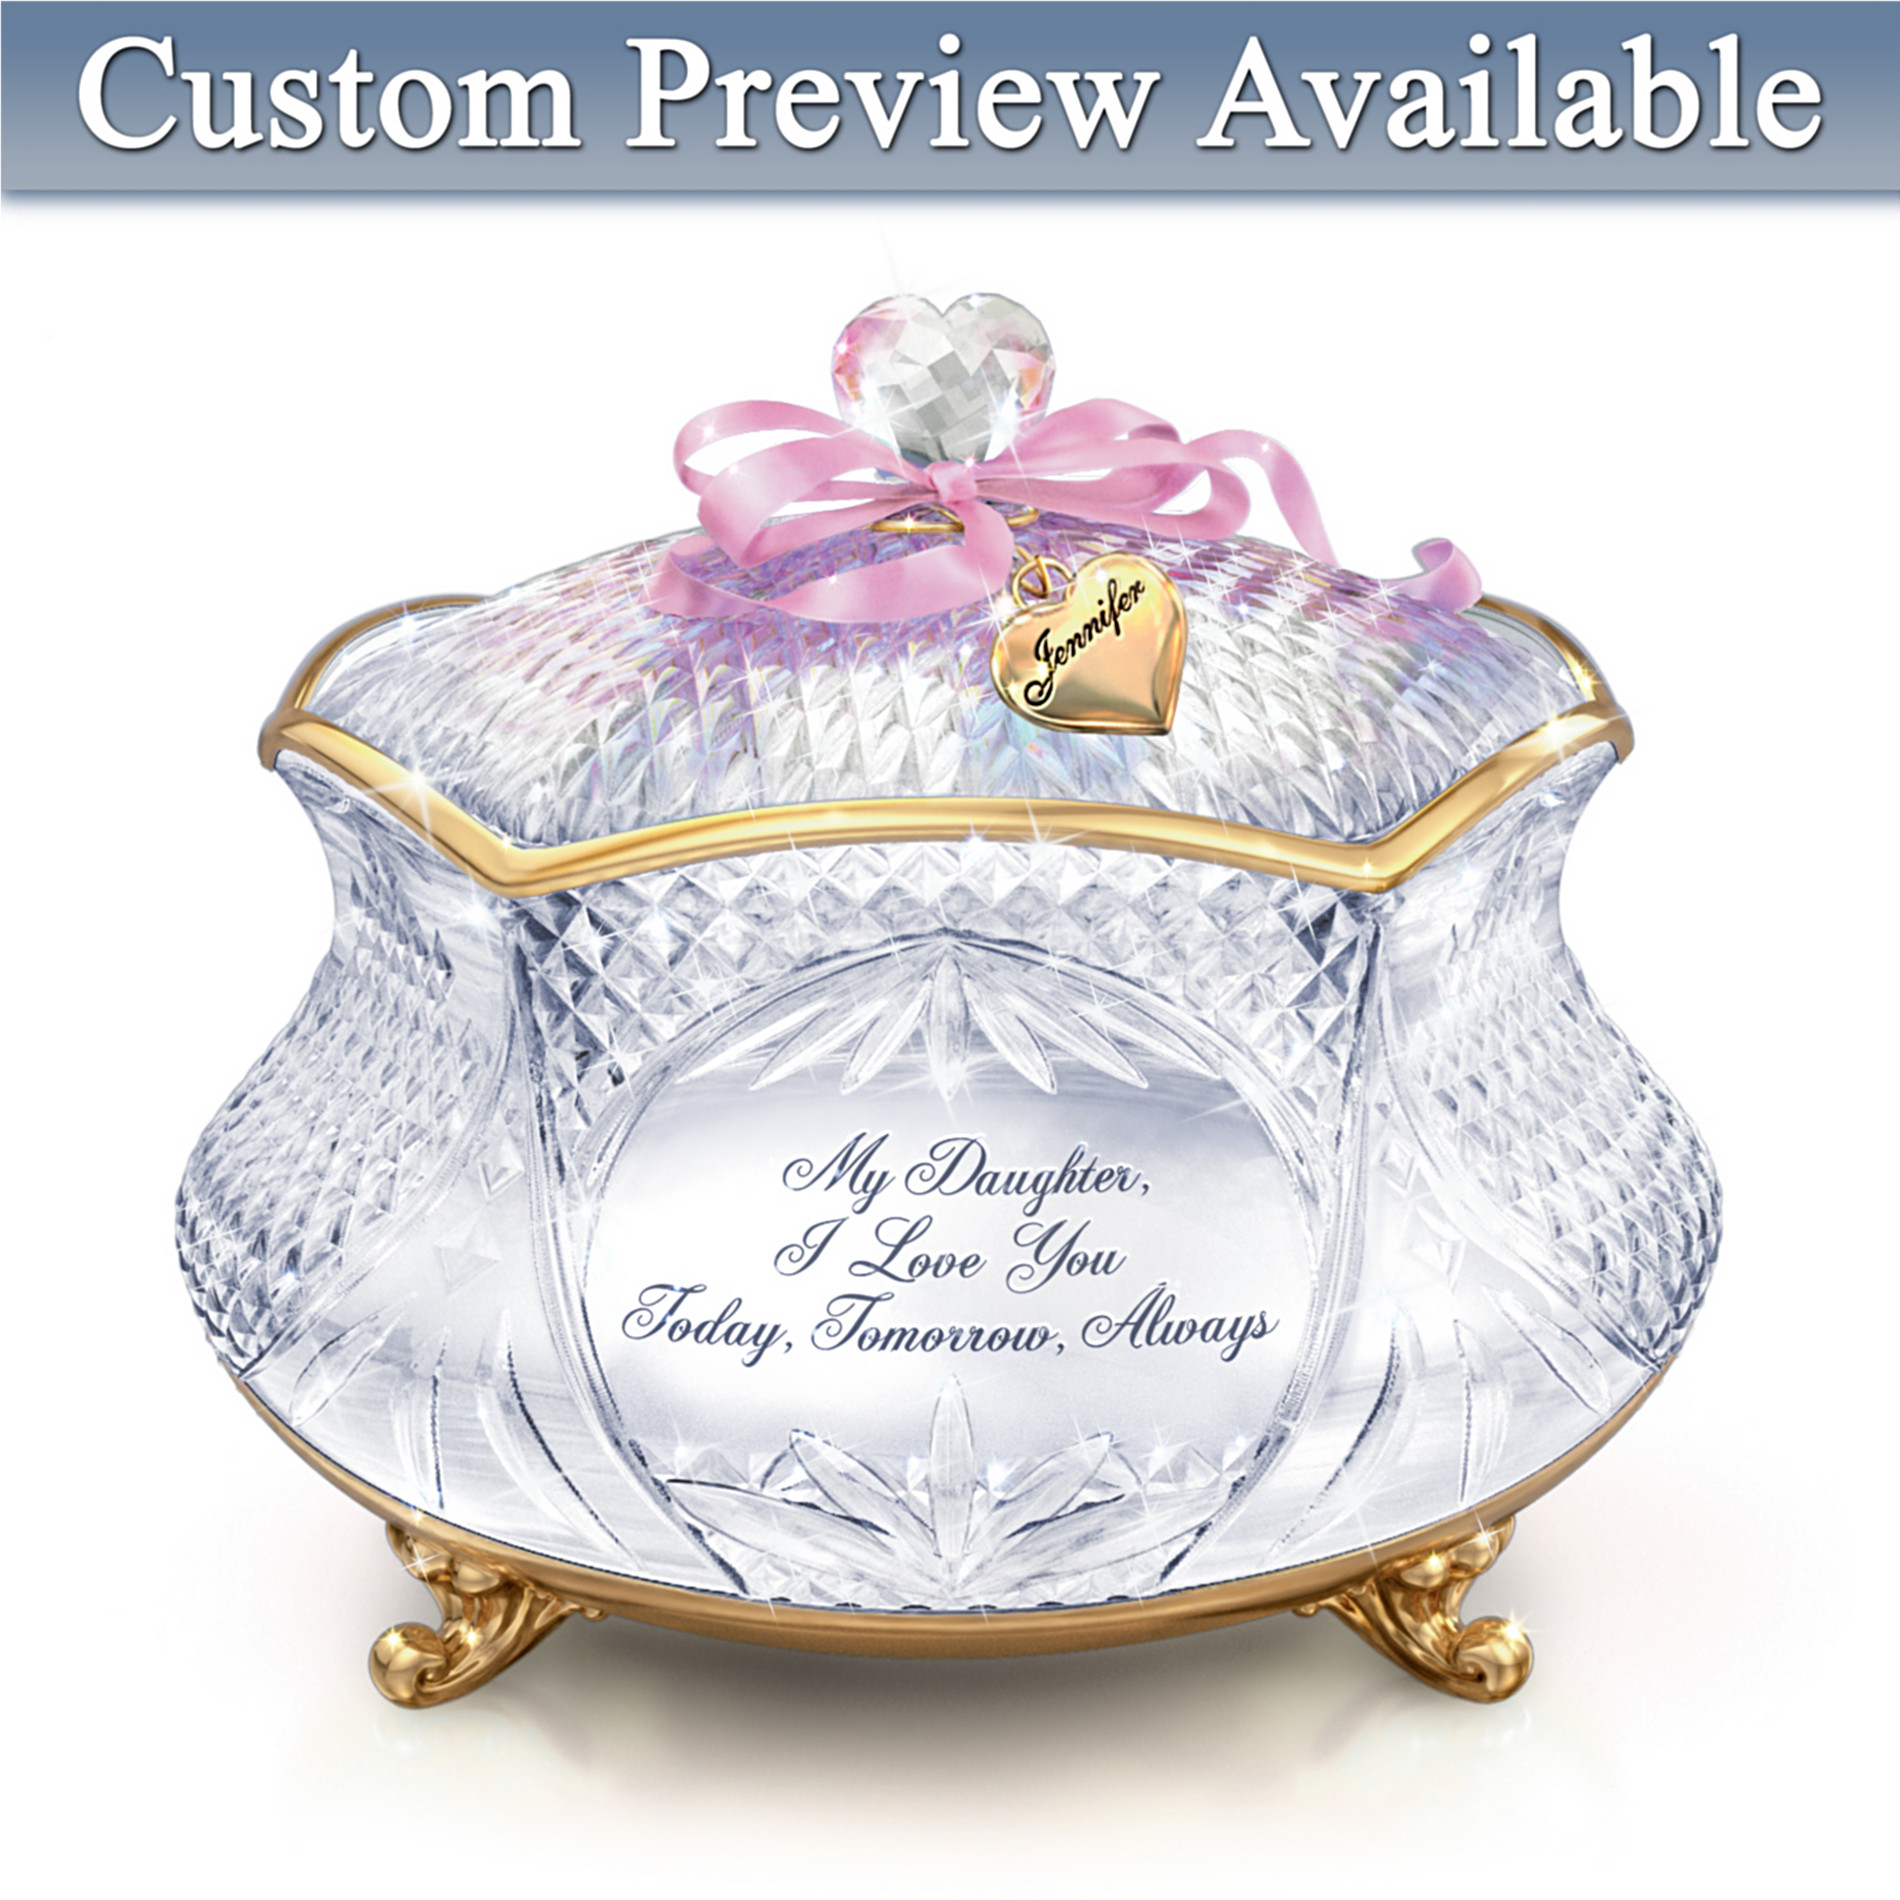 The Bradford Exchange Daughter Personalized Crystal Music Box: My Daughter, I Love You at Sears.com